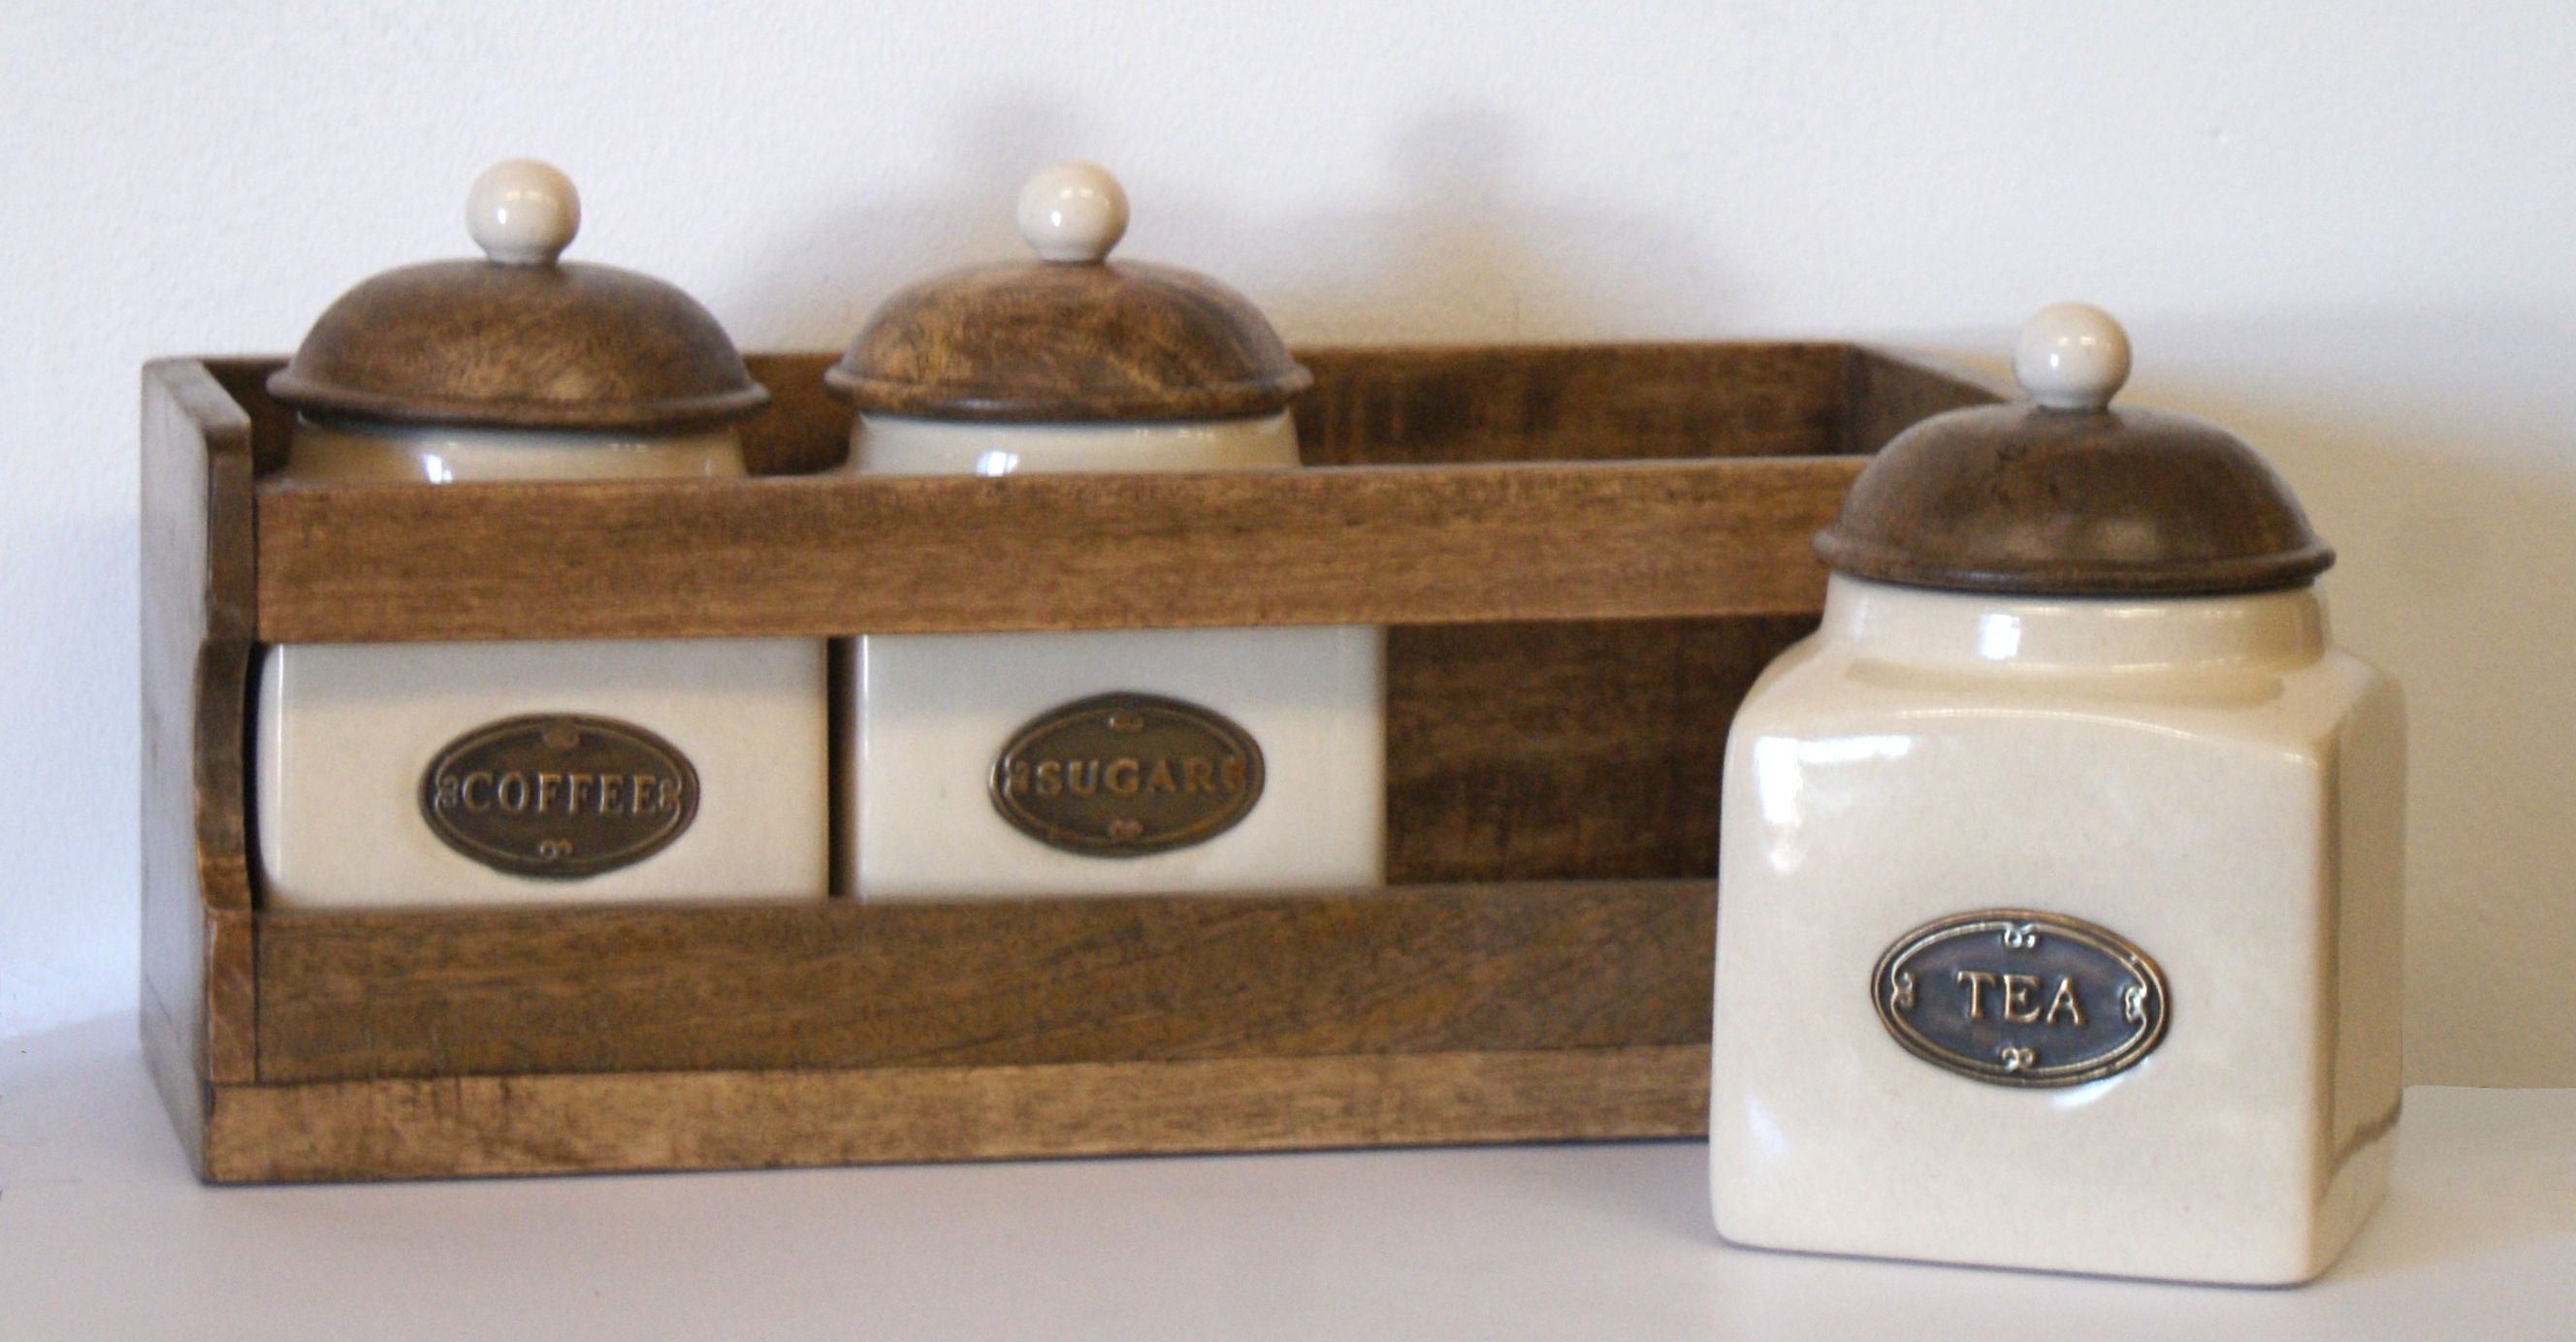 Country Kitchen Tea Coffee And Sugar Canisters With Stamped Metal Labels In A